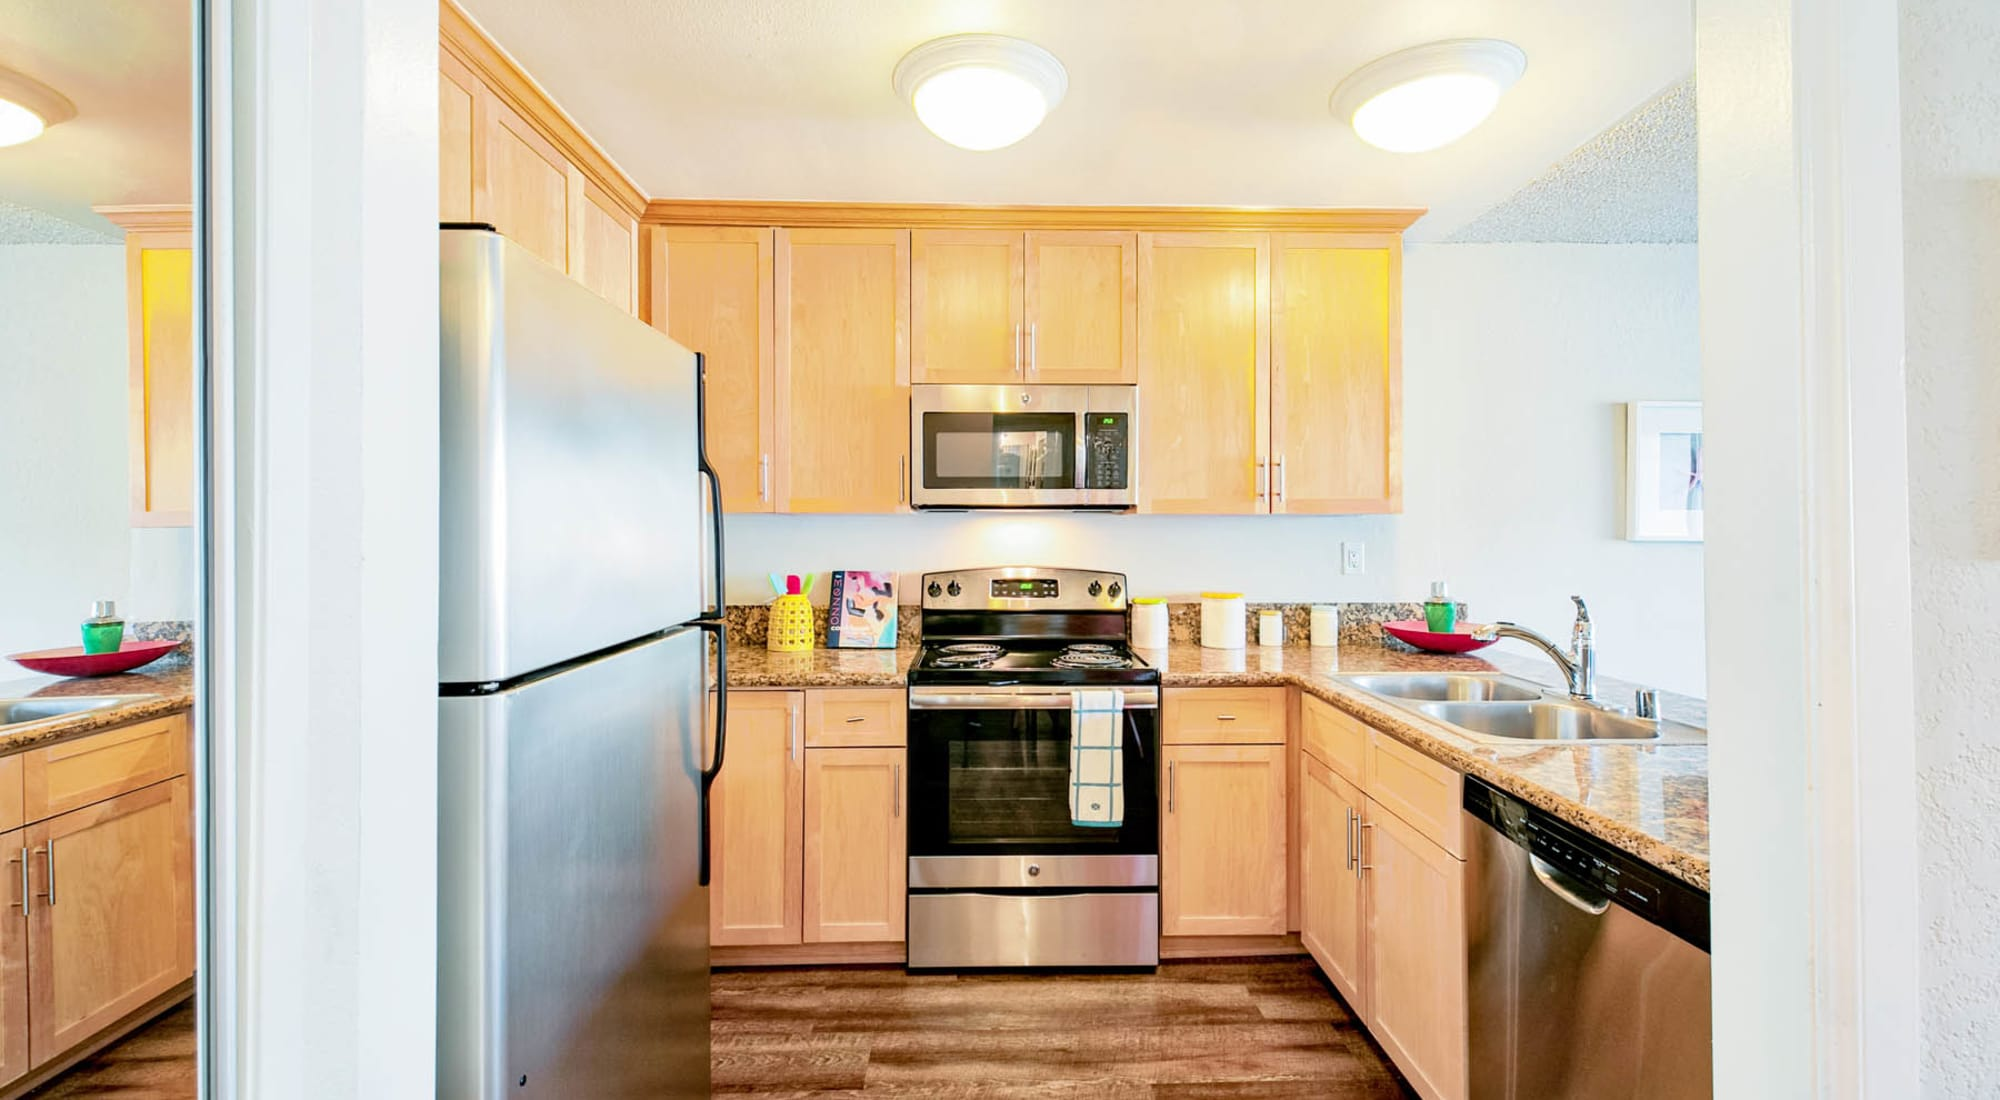 Stainless-steel appliances and hardwood flooring in a model home's kitchen at The Tides at Marina Harbor in Marina Del Rey, California